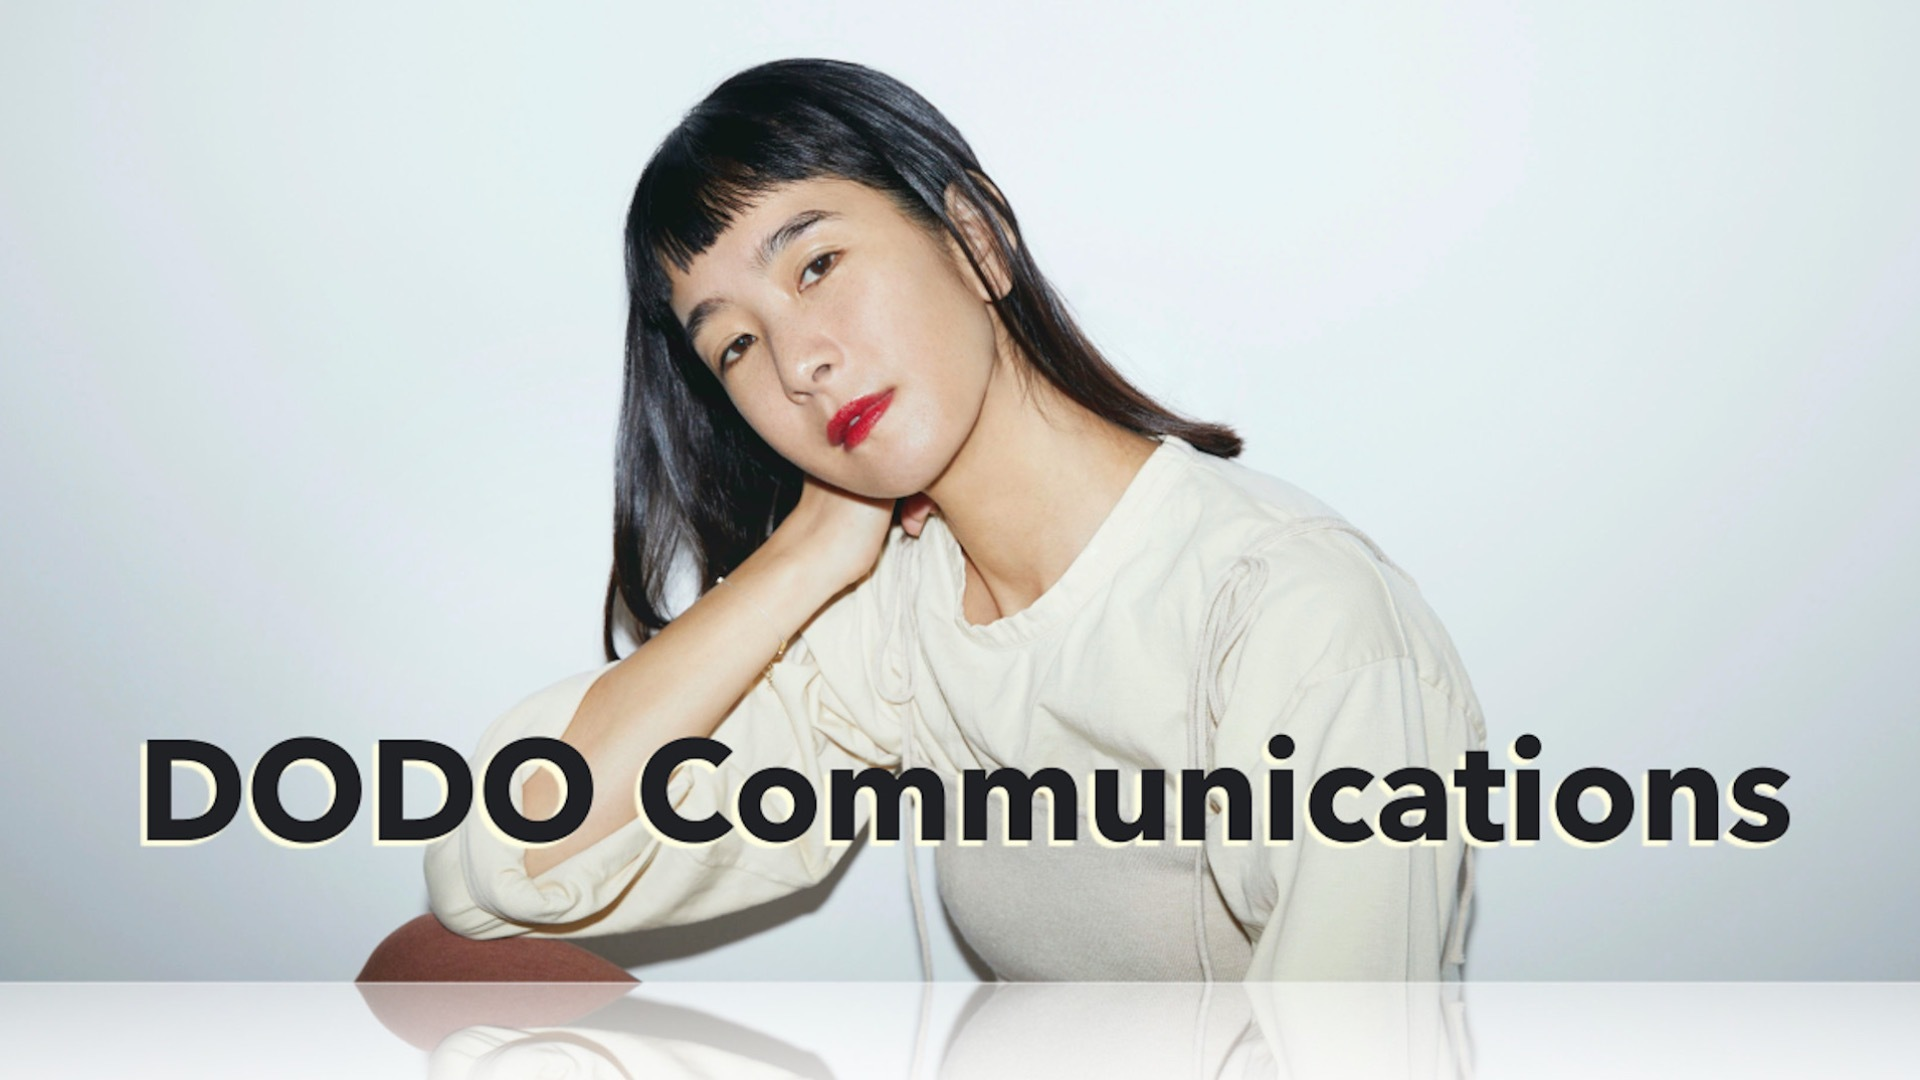 DODO Communications